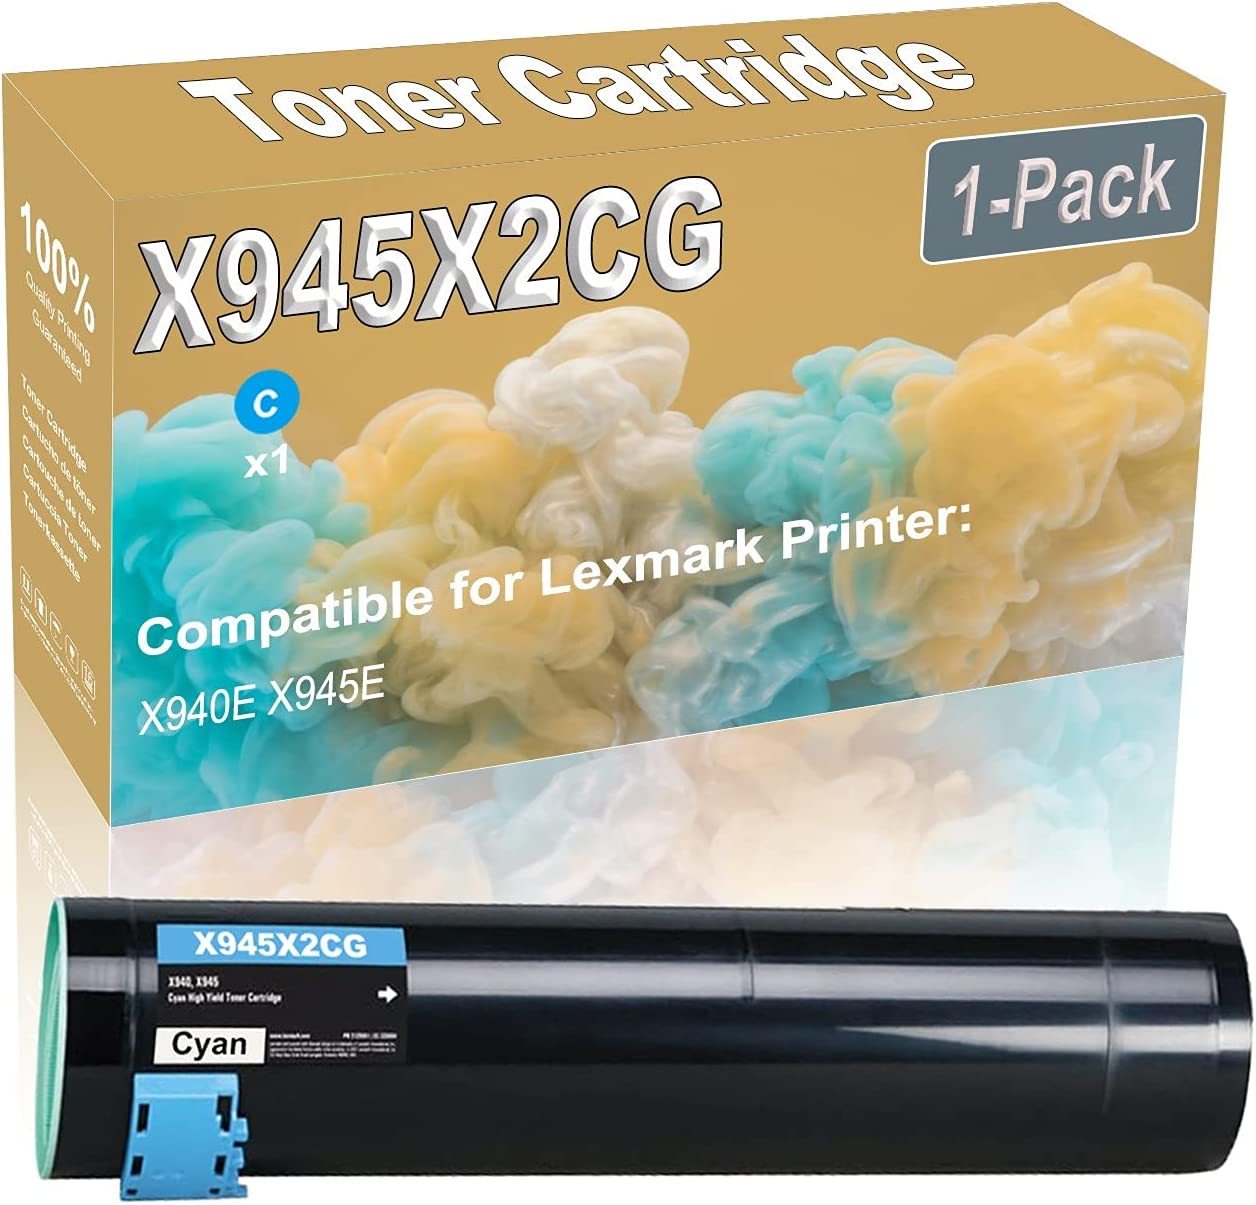 1-Pack (Cyan) Compatible X940E X945E Laser Printer Toner Cartridge (High Capacity) Replacement for Lexmark X945X2CG Printer Toner Cartridge